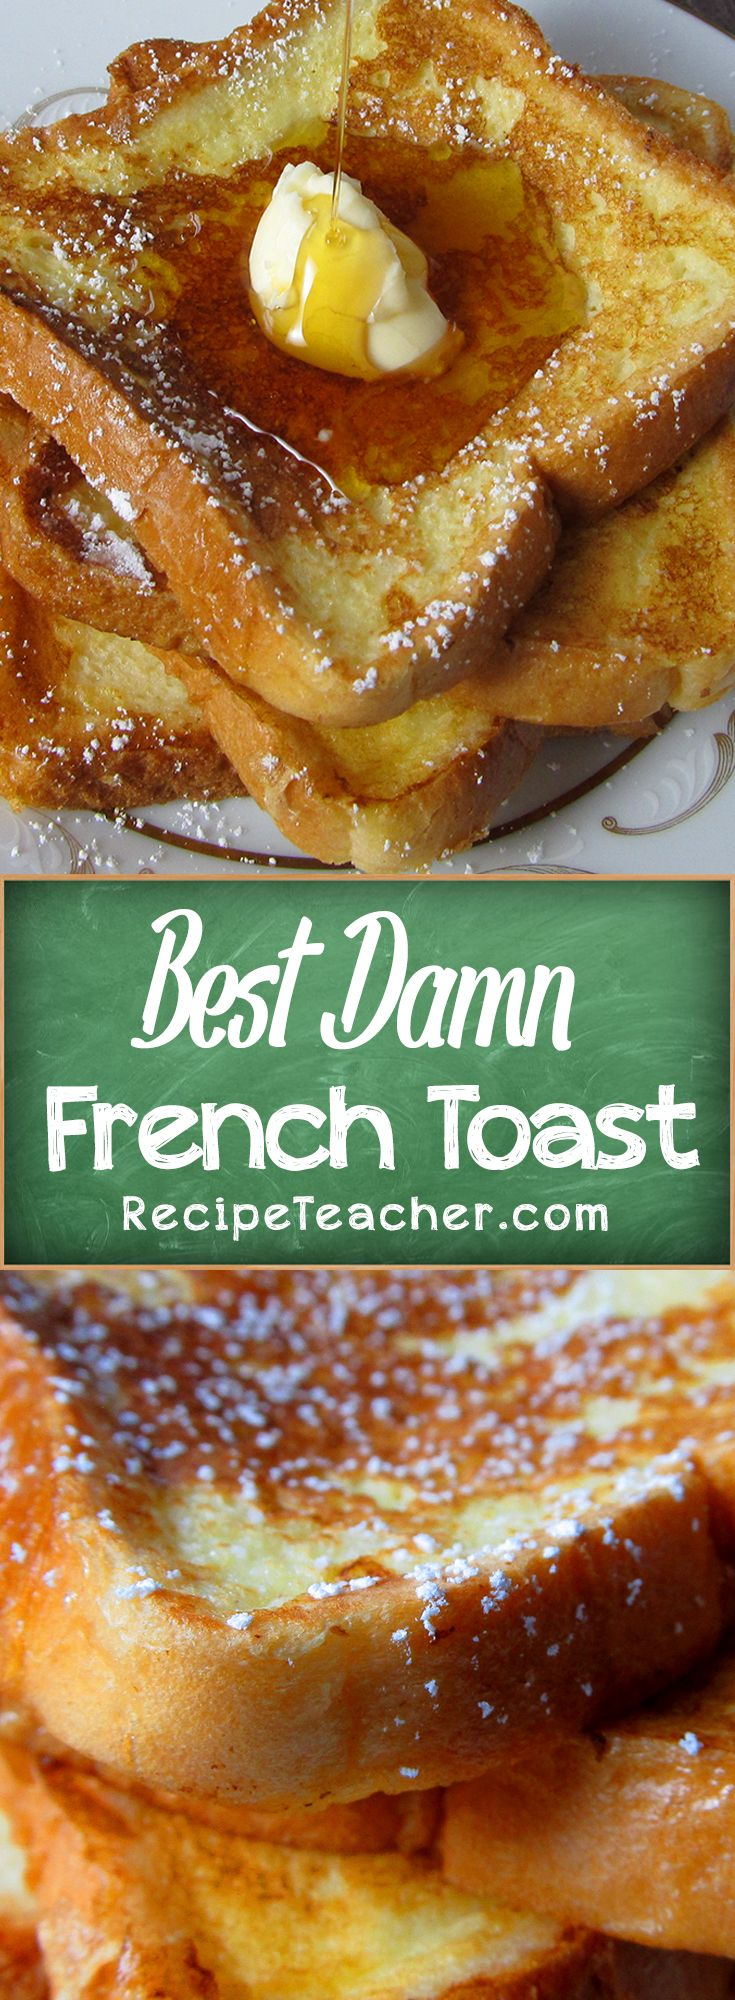 Easy recipe for country style French Toast. The perfect easy recipe for the weekend! #easyrecipes